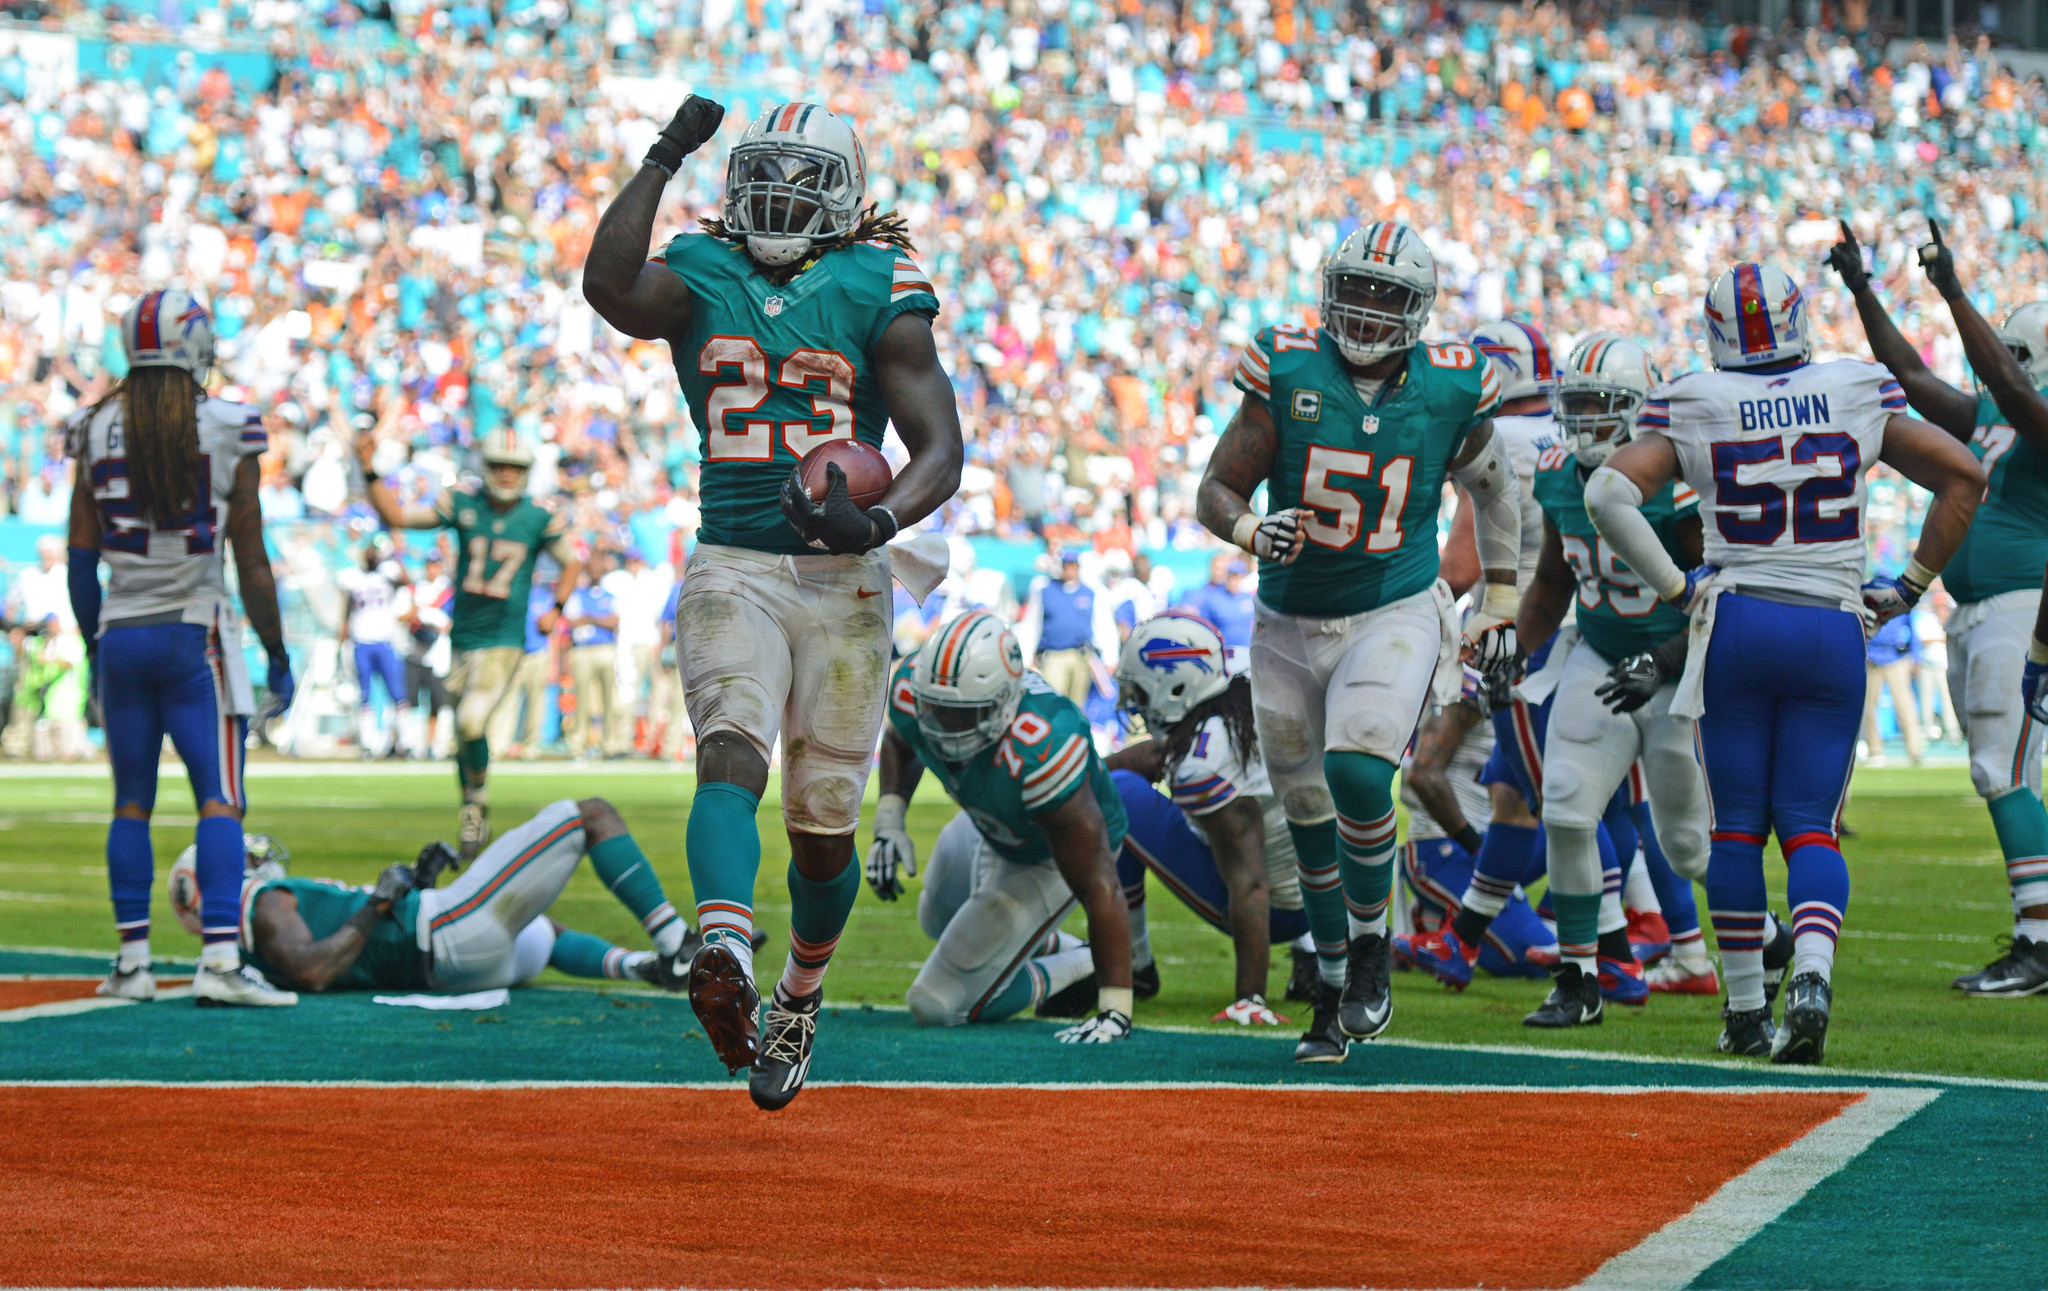 Sfl-20-things-we-learned-buffalo-bills-at-miami-dolphins-20161022